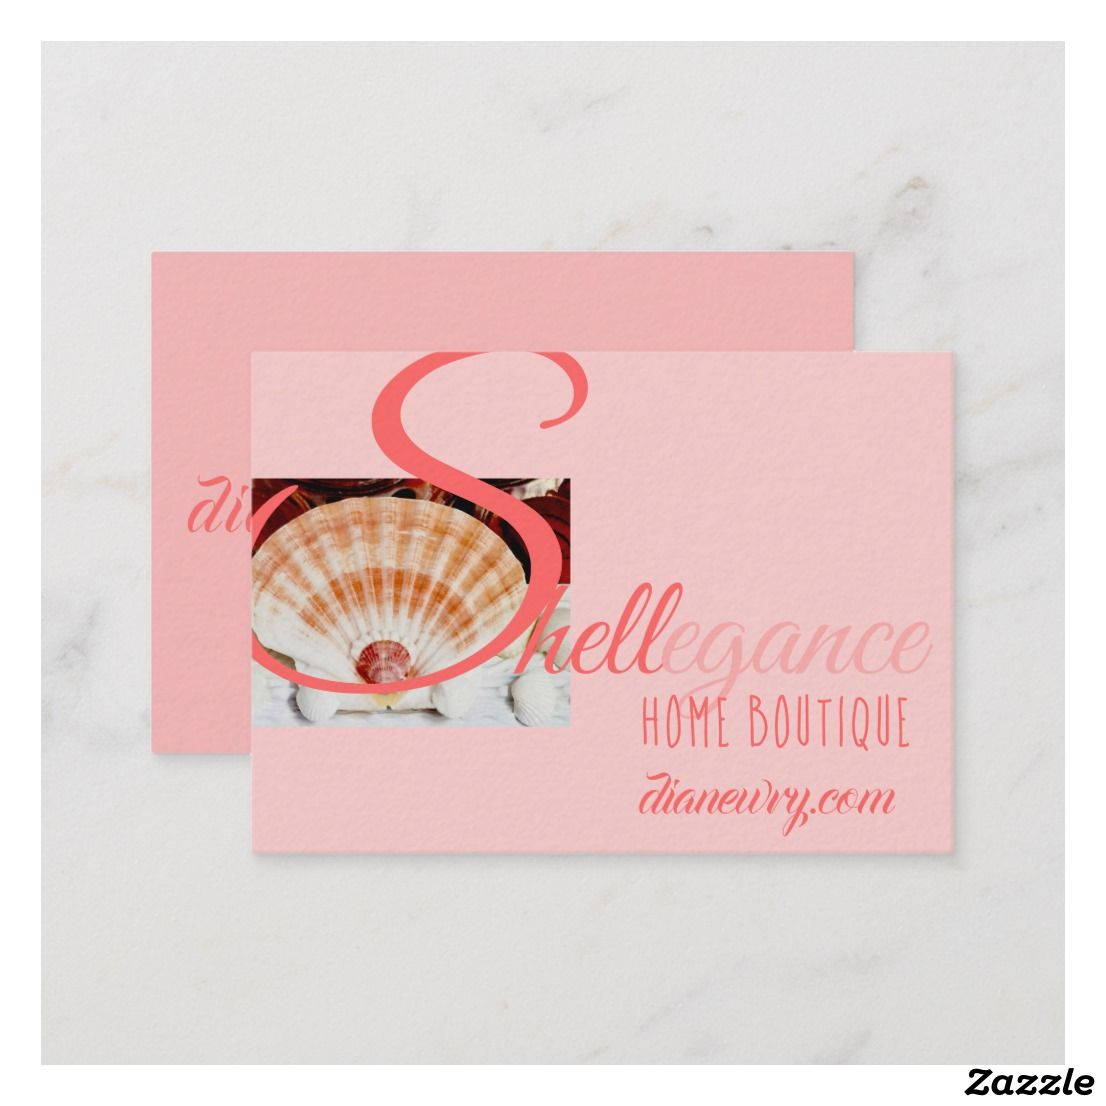 create your own business card  zazzle  create your